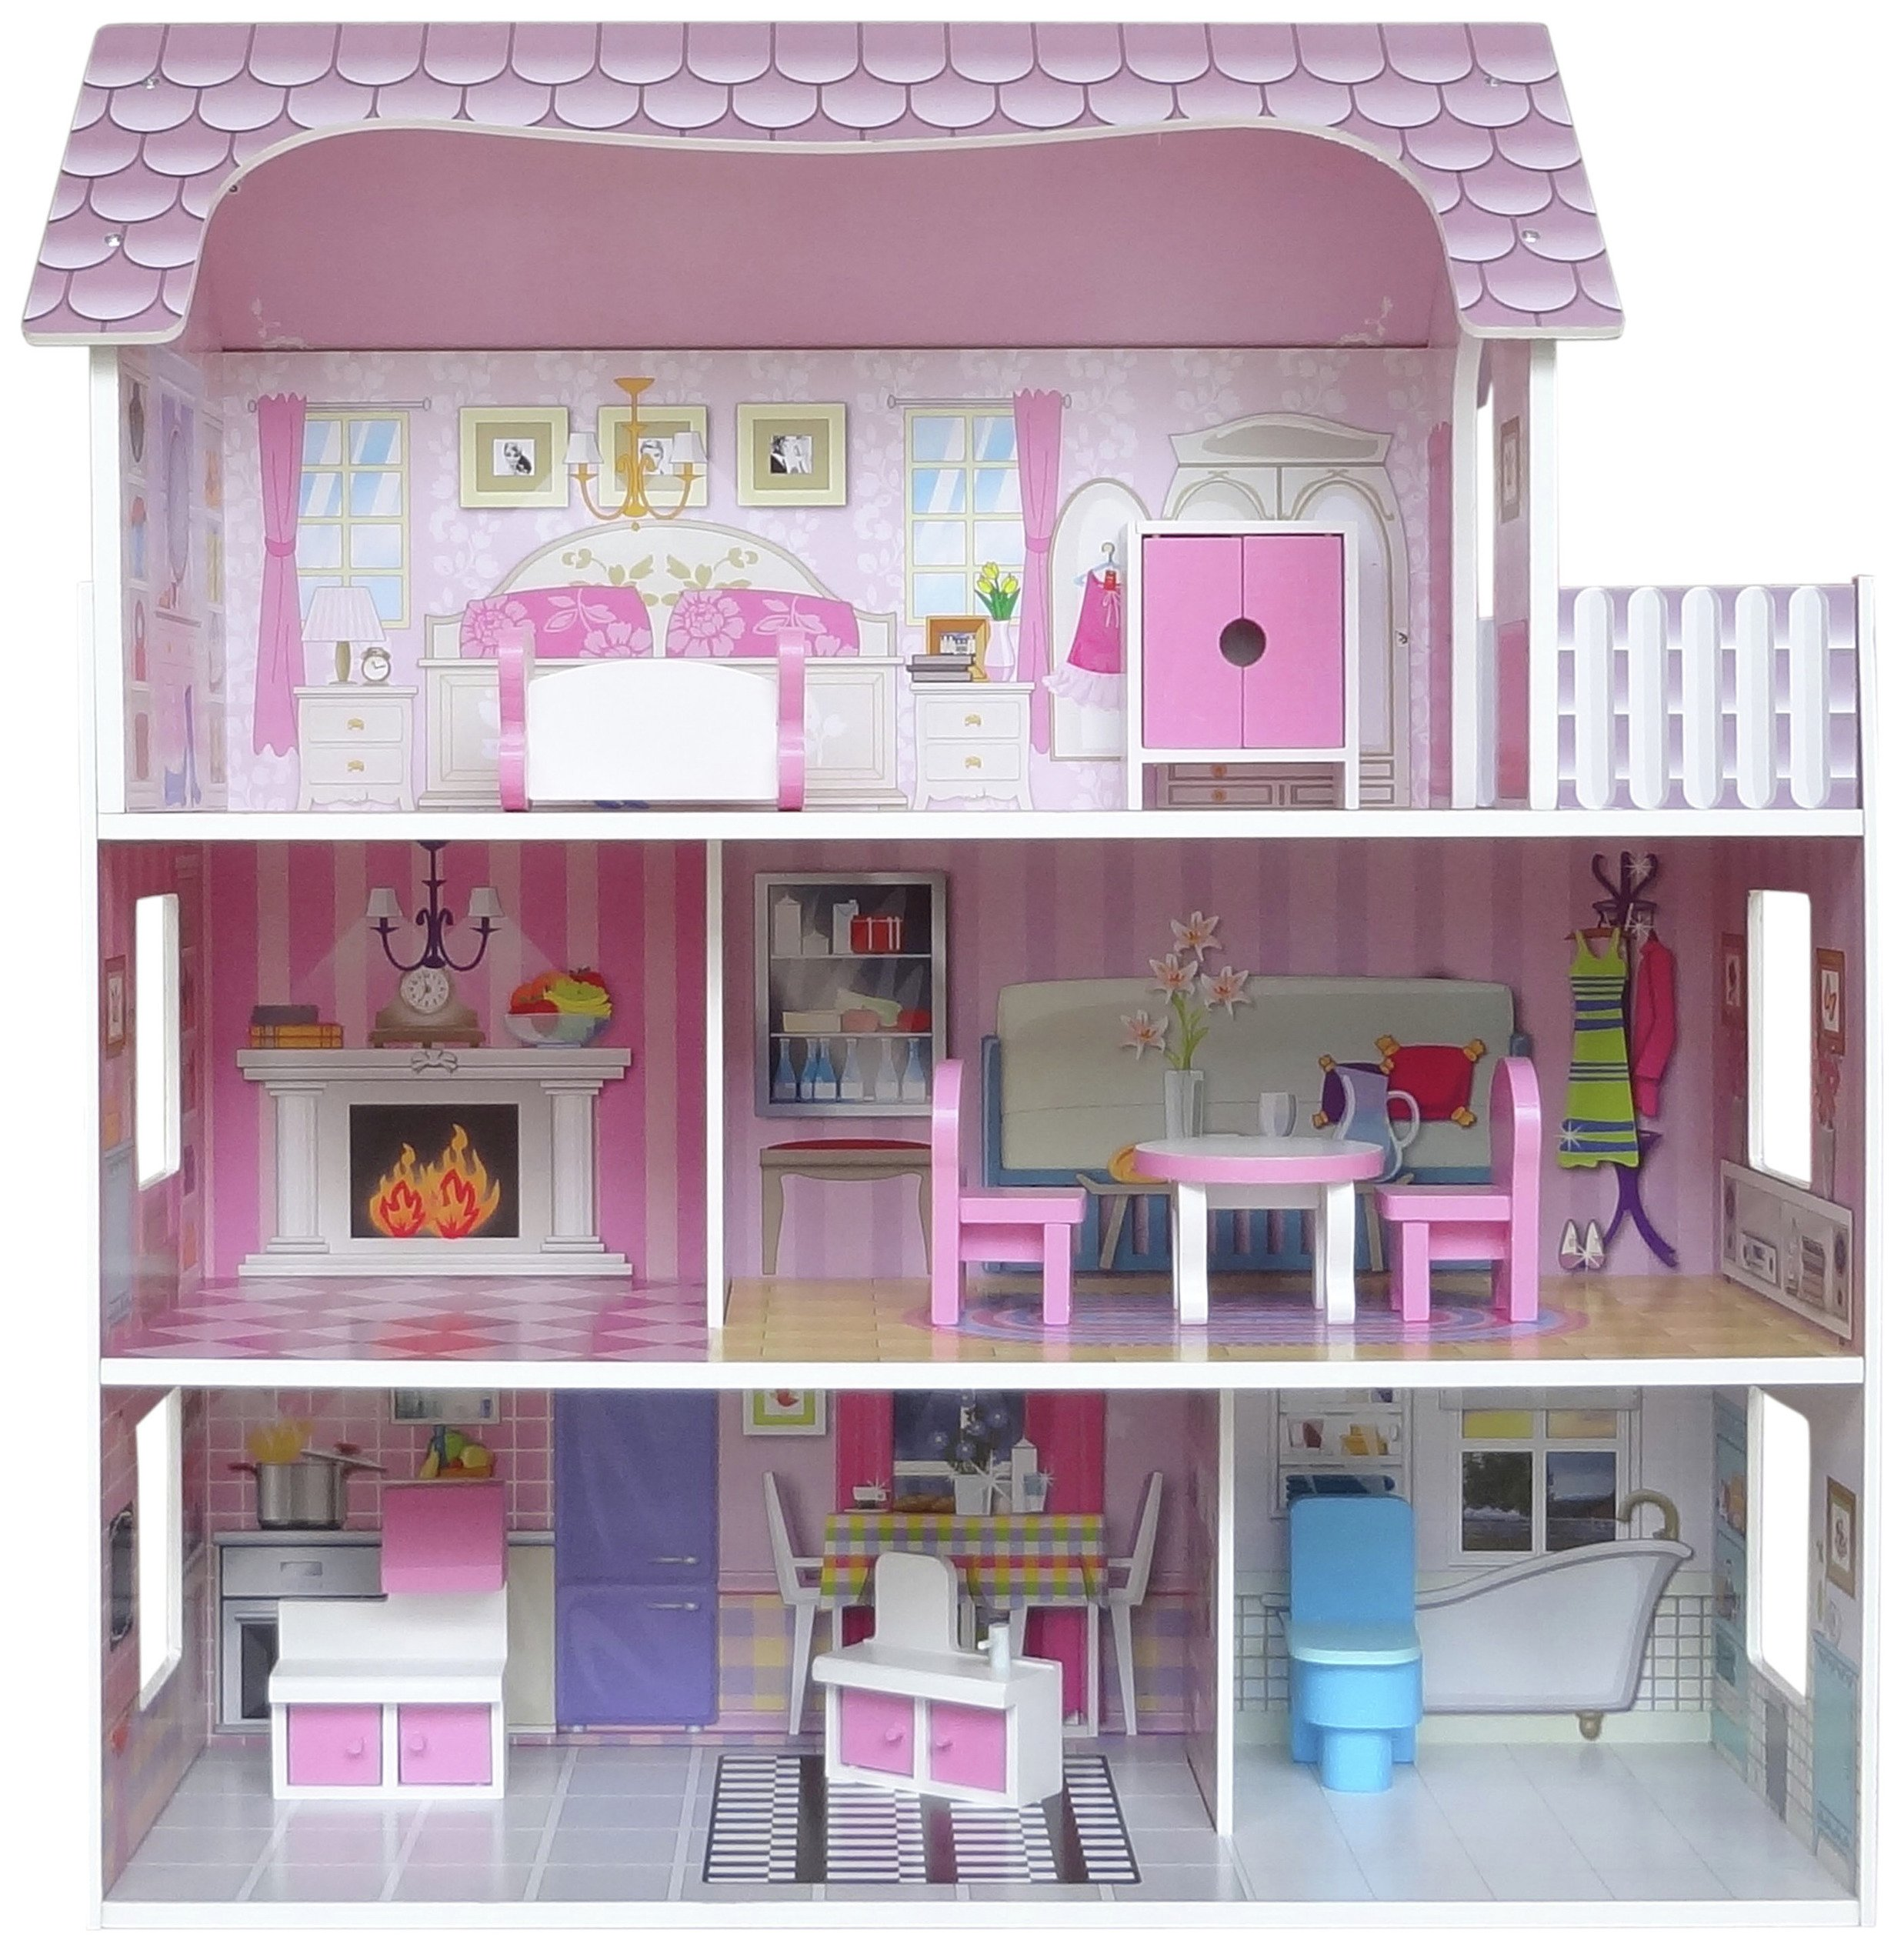 Kiddi Style Kid's Large Victorian Wooden Doll's House review